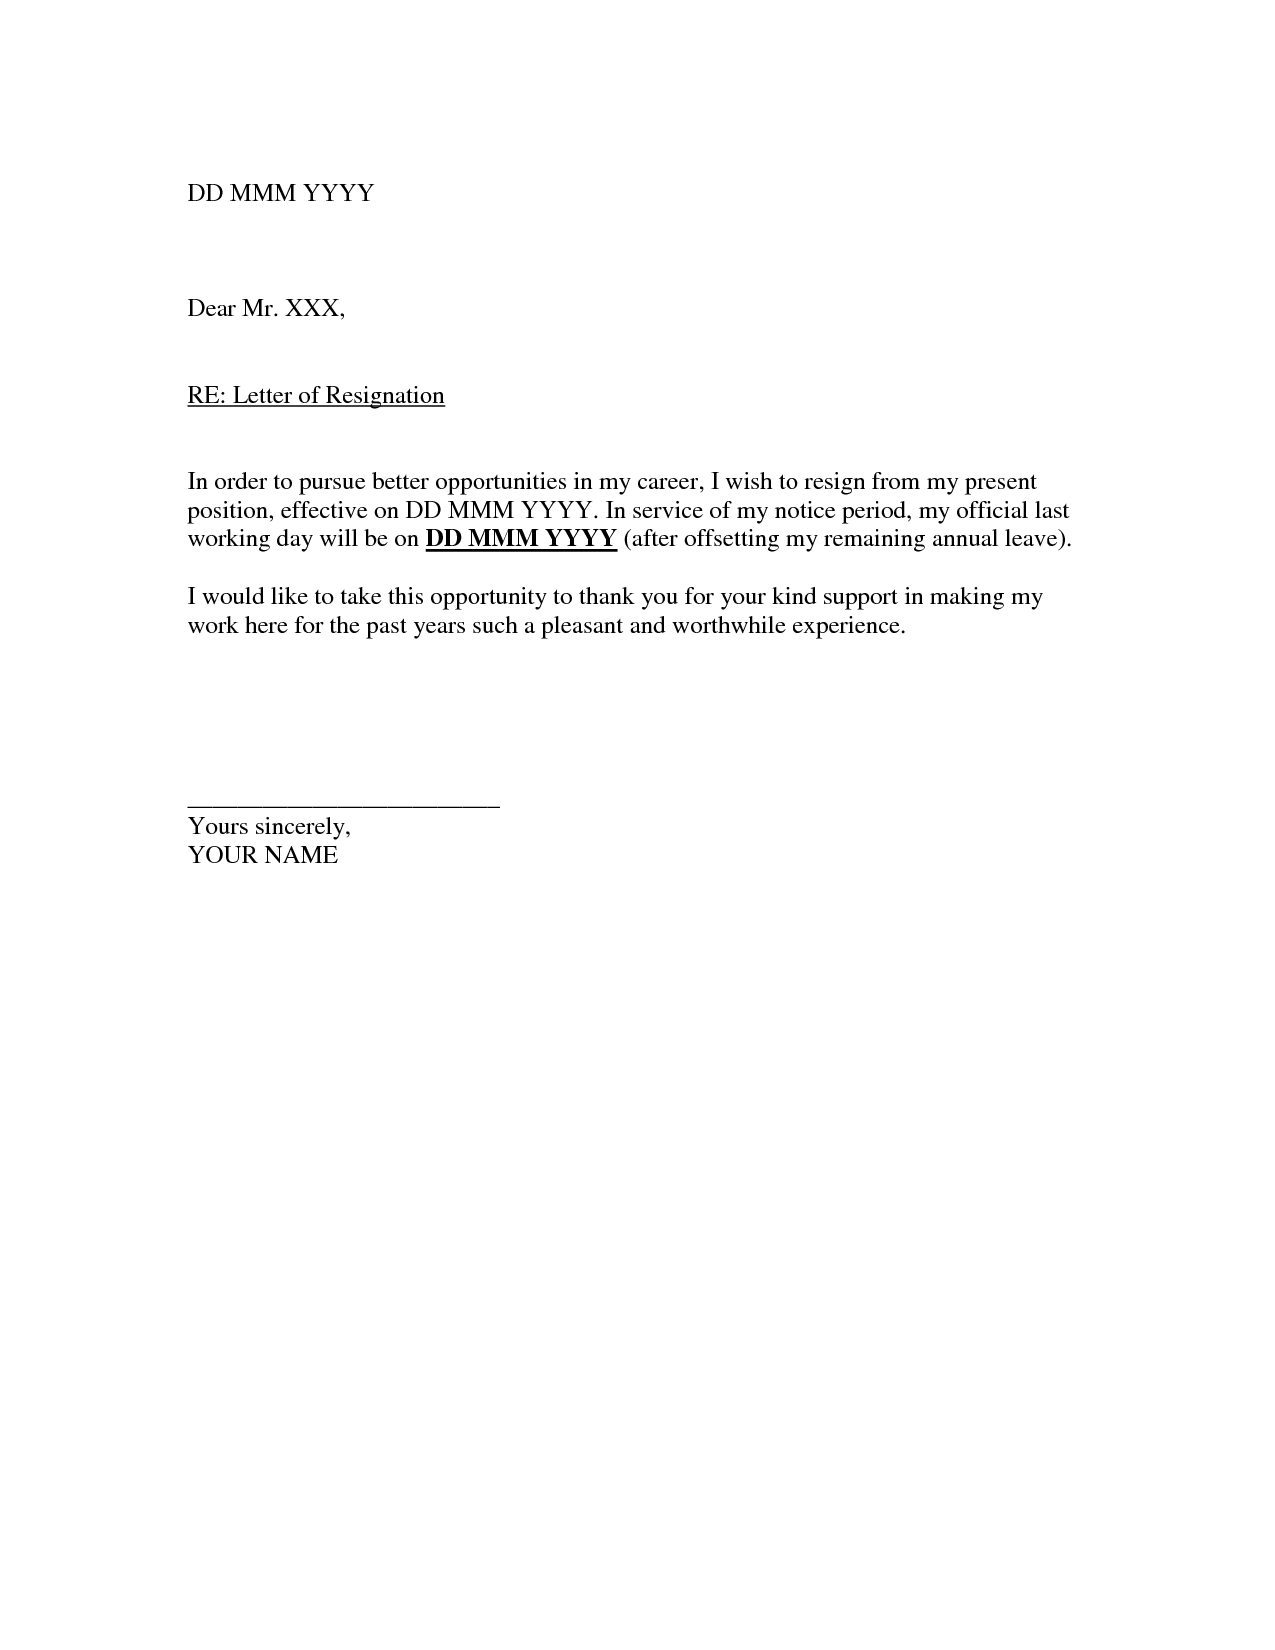 Job resignation template yolarnetonic job resignation template expocarfo Image collections